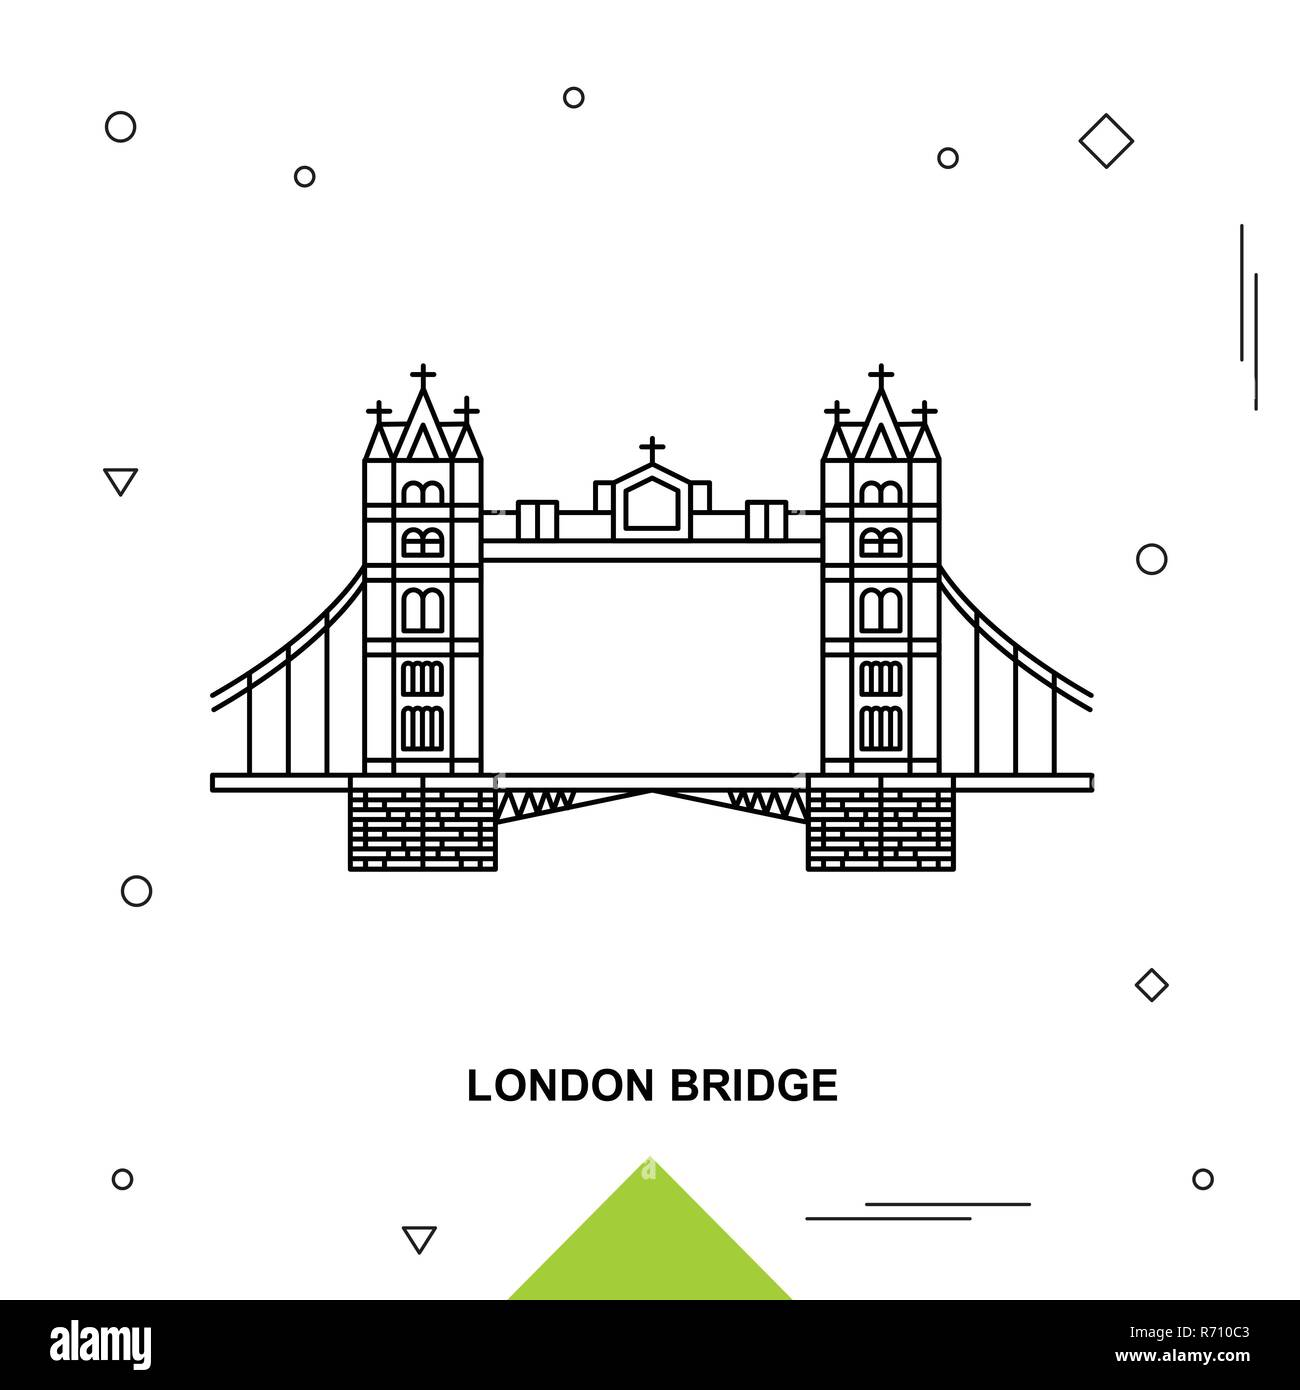 LONDON BRIDGE - Stock Vector